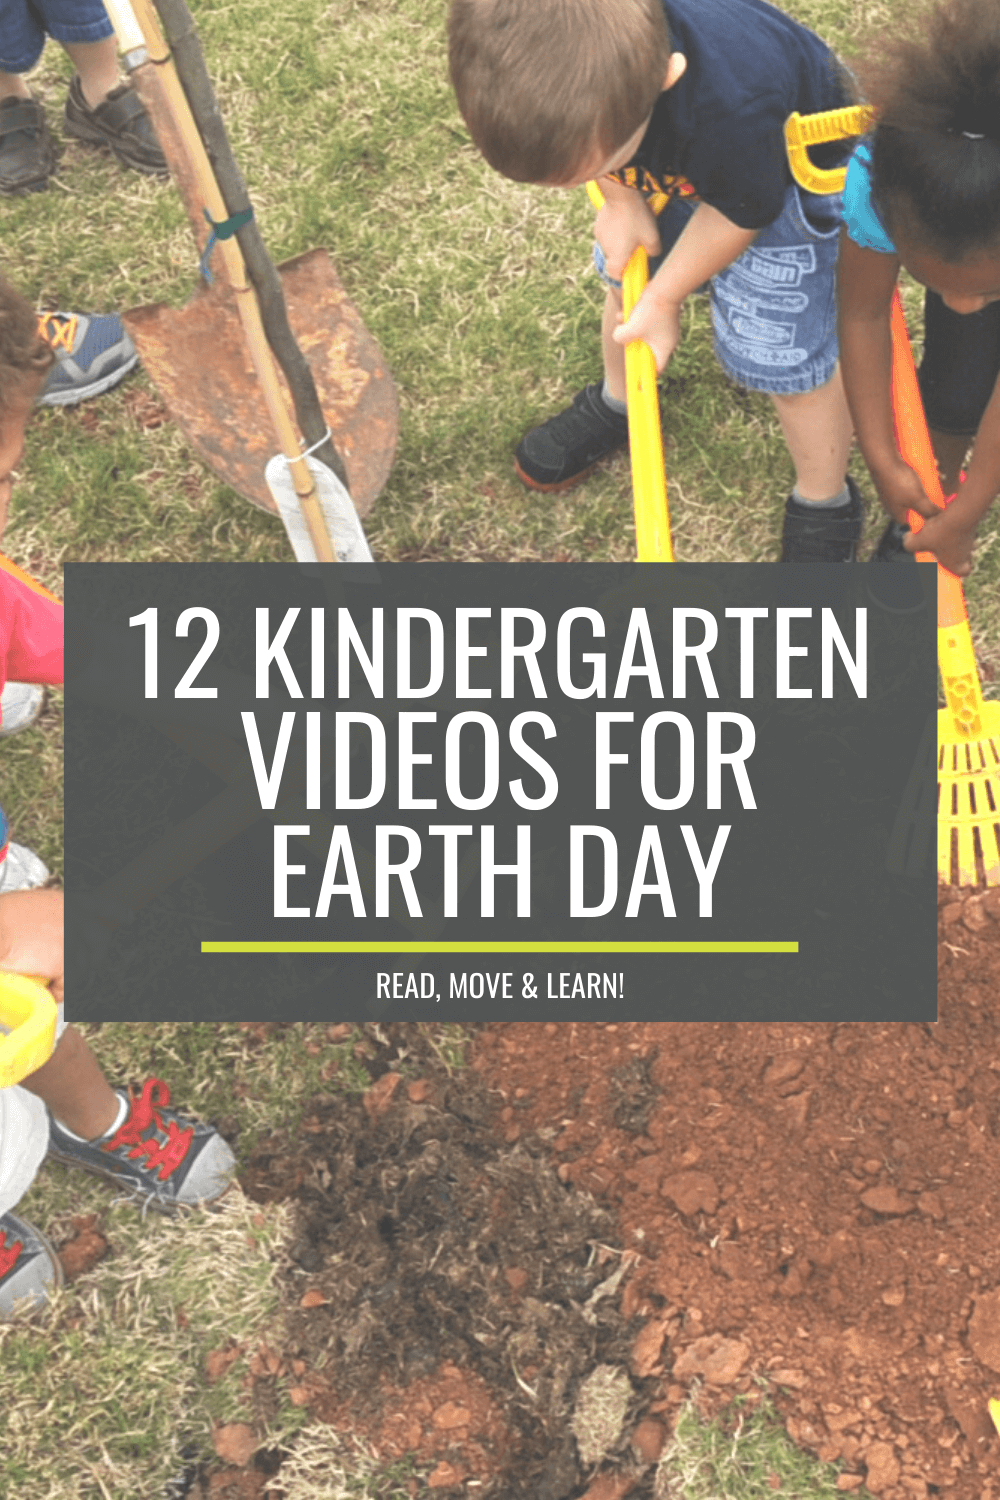 12 Kindergarten Videos for Earth Day – Read, Move and Learn!